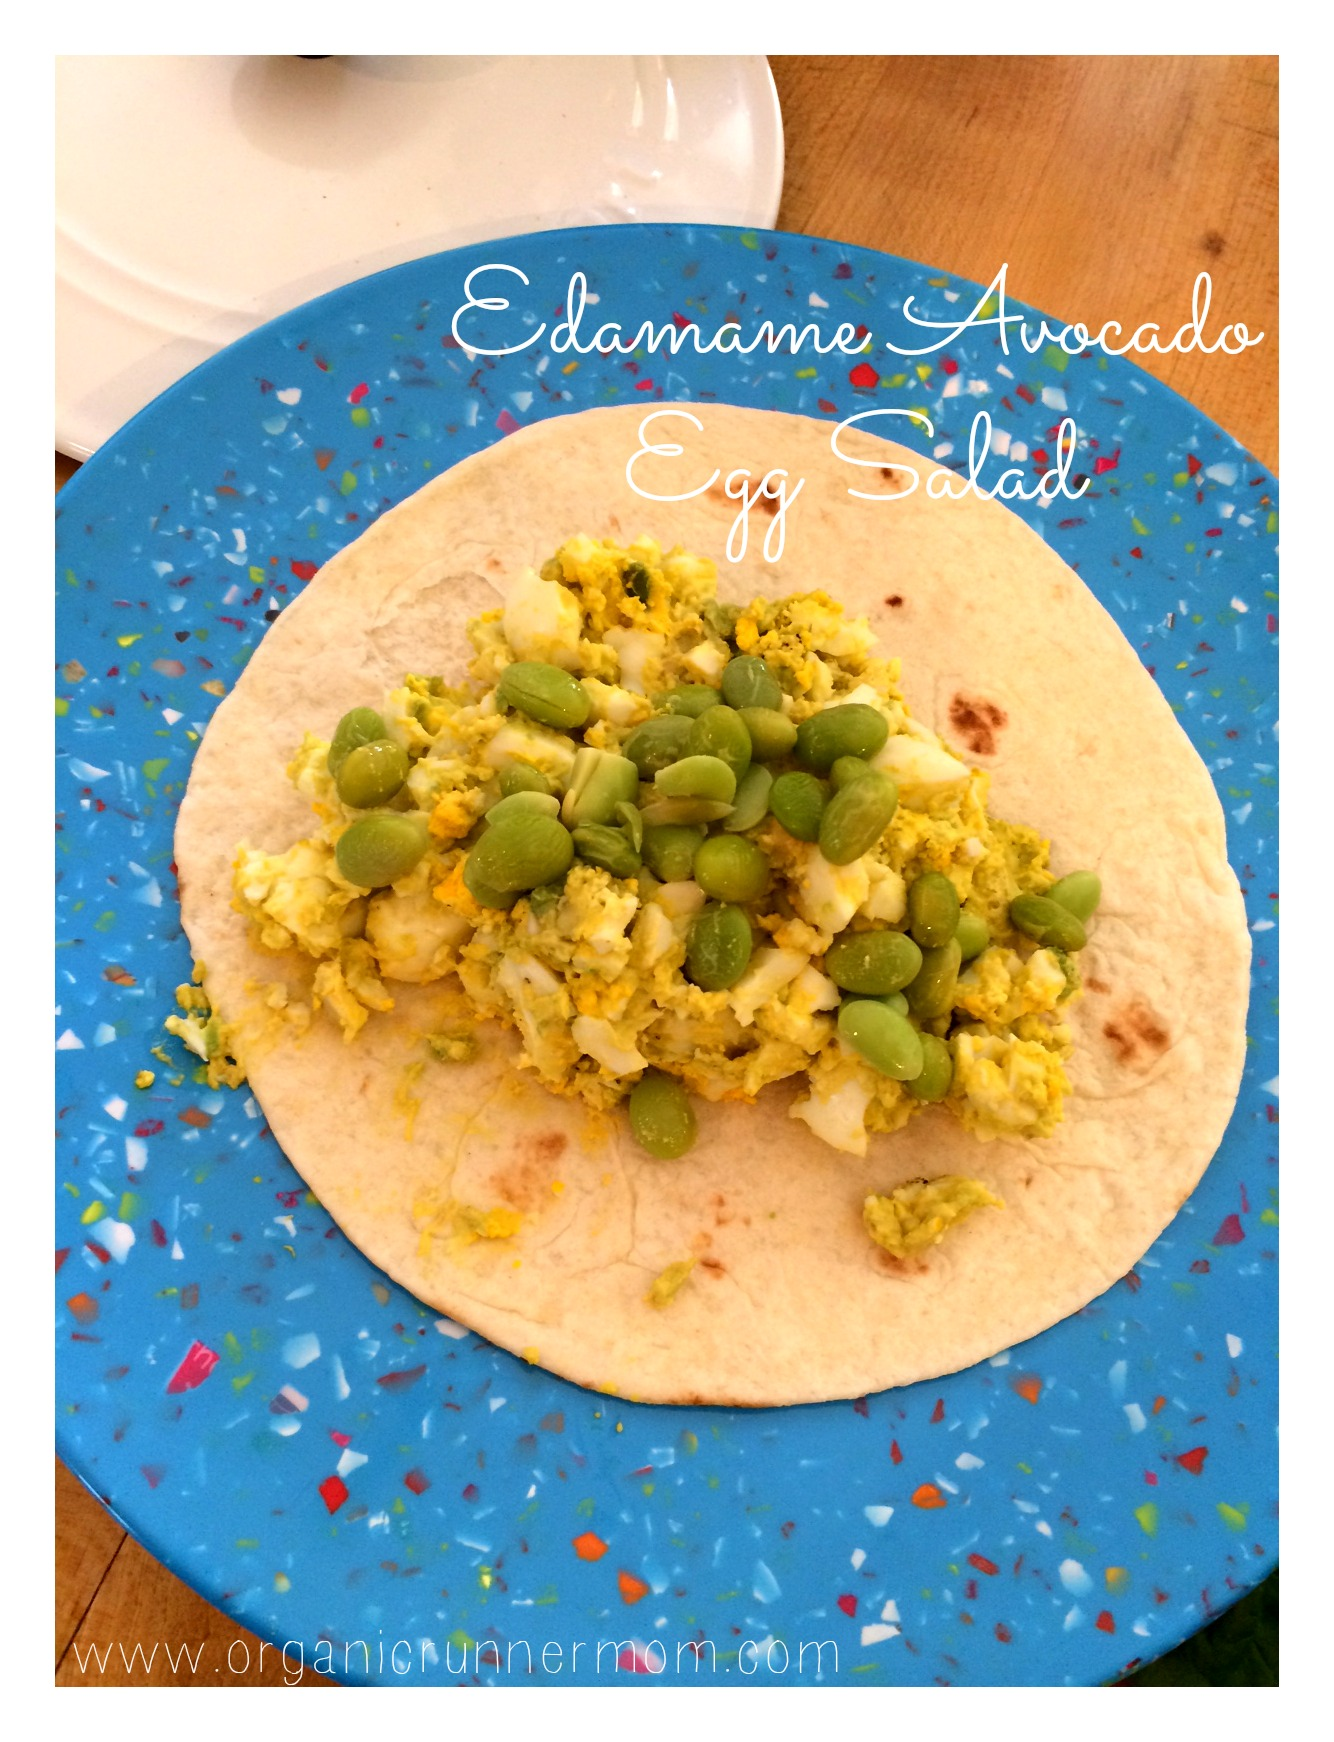 Fresh Recipe: Edamame Avocado Egg Salad